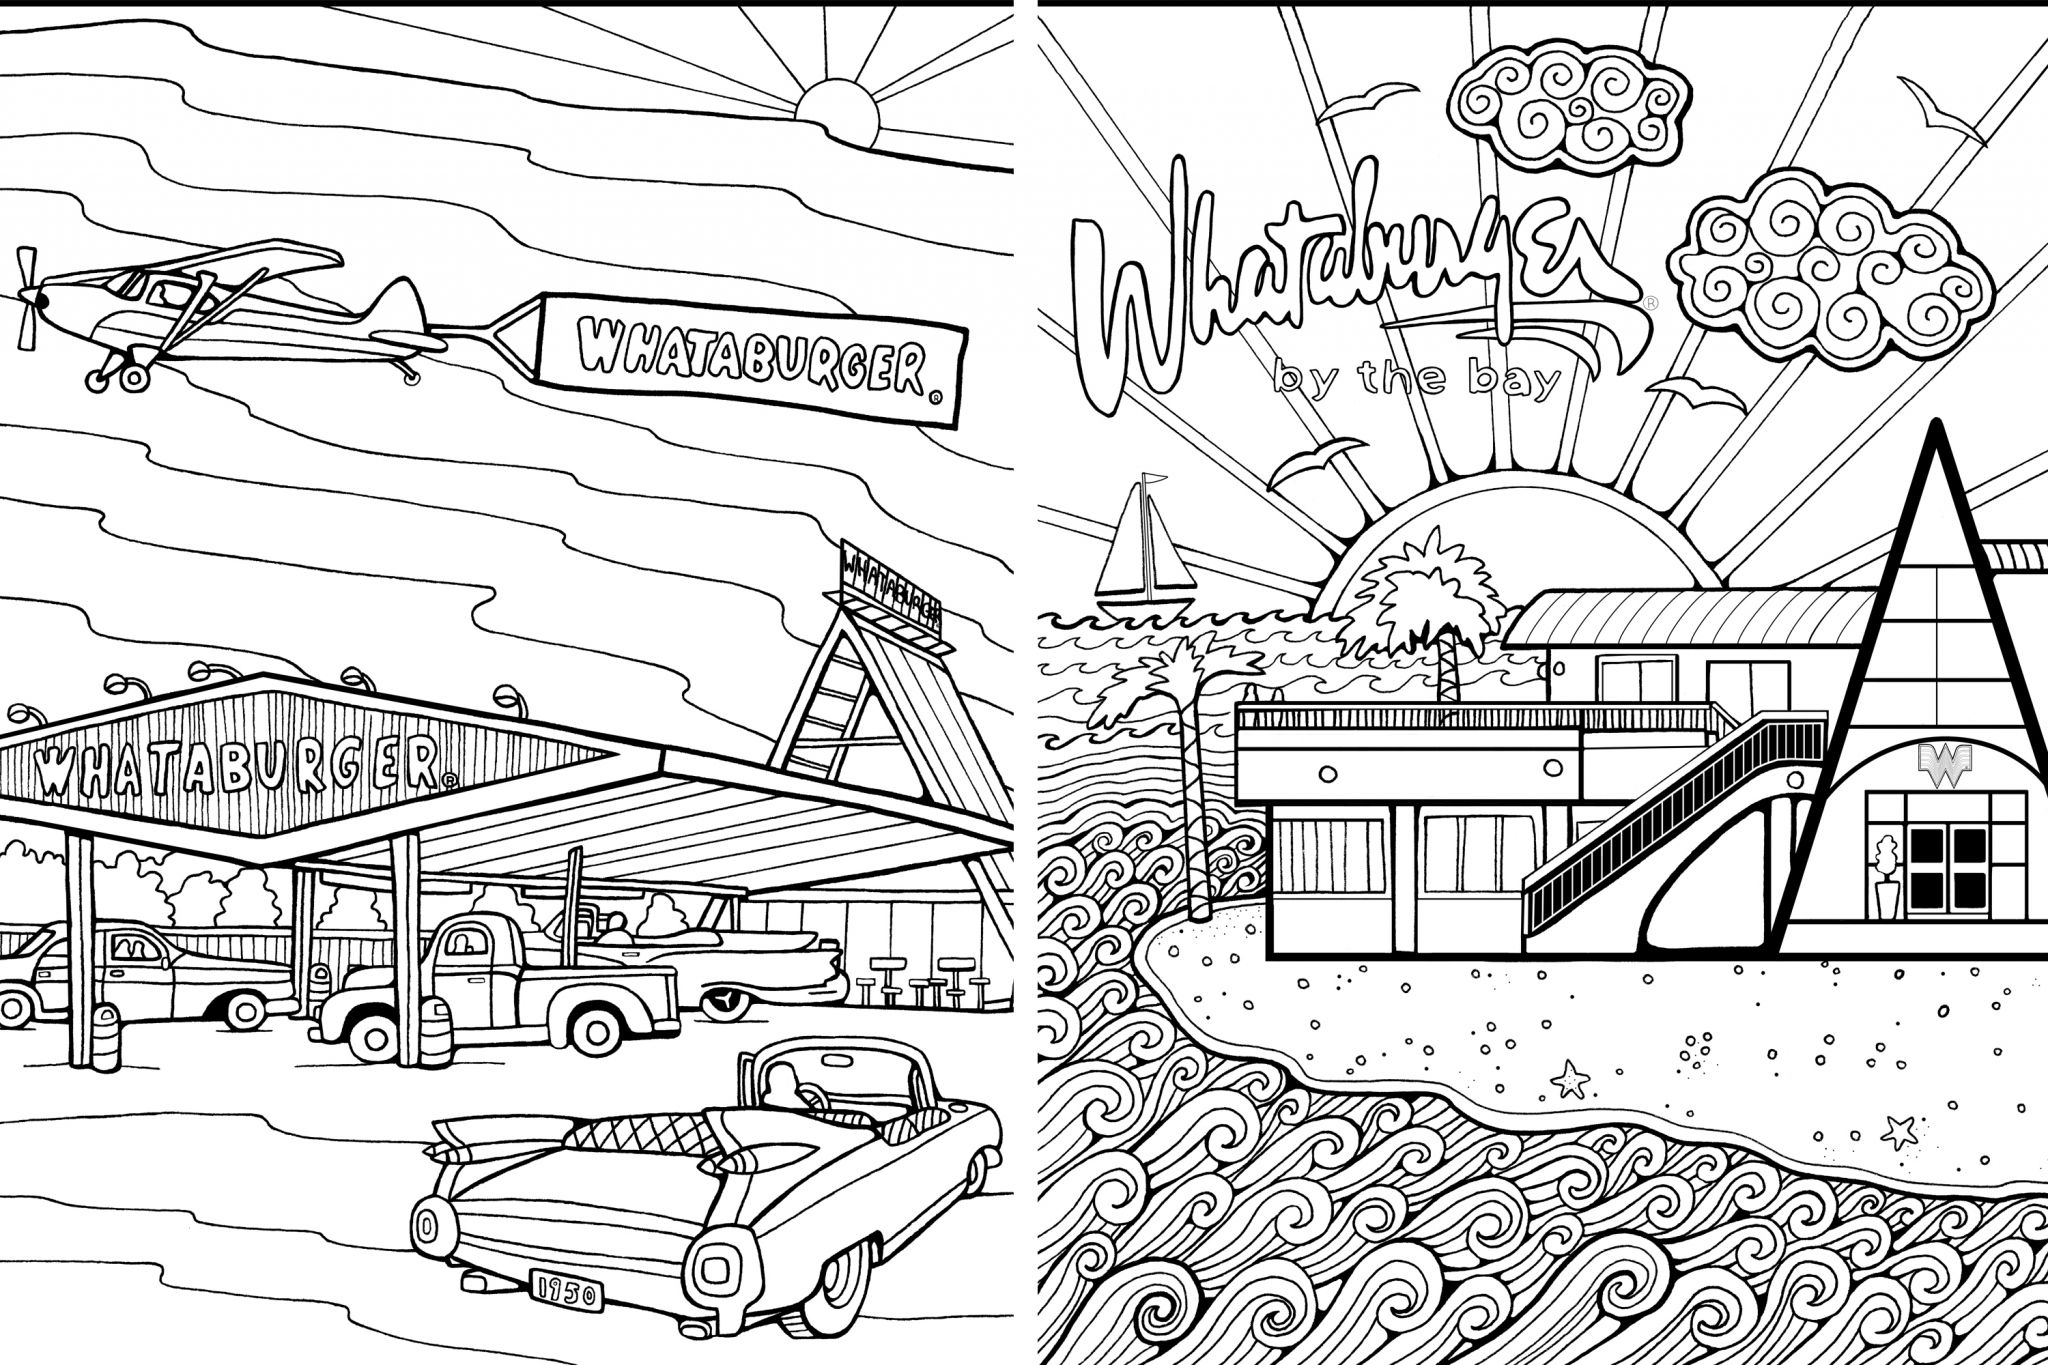 Pin on Whataburger Coloring Pages